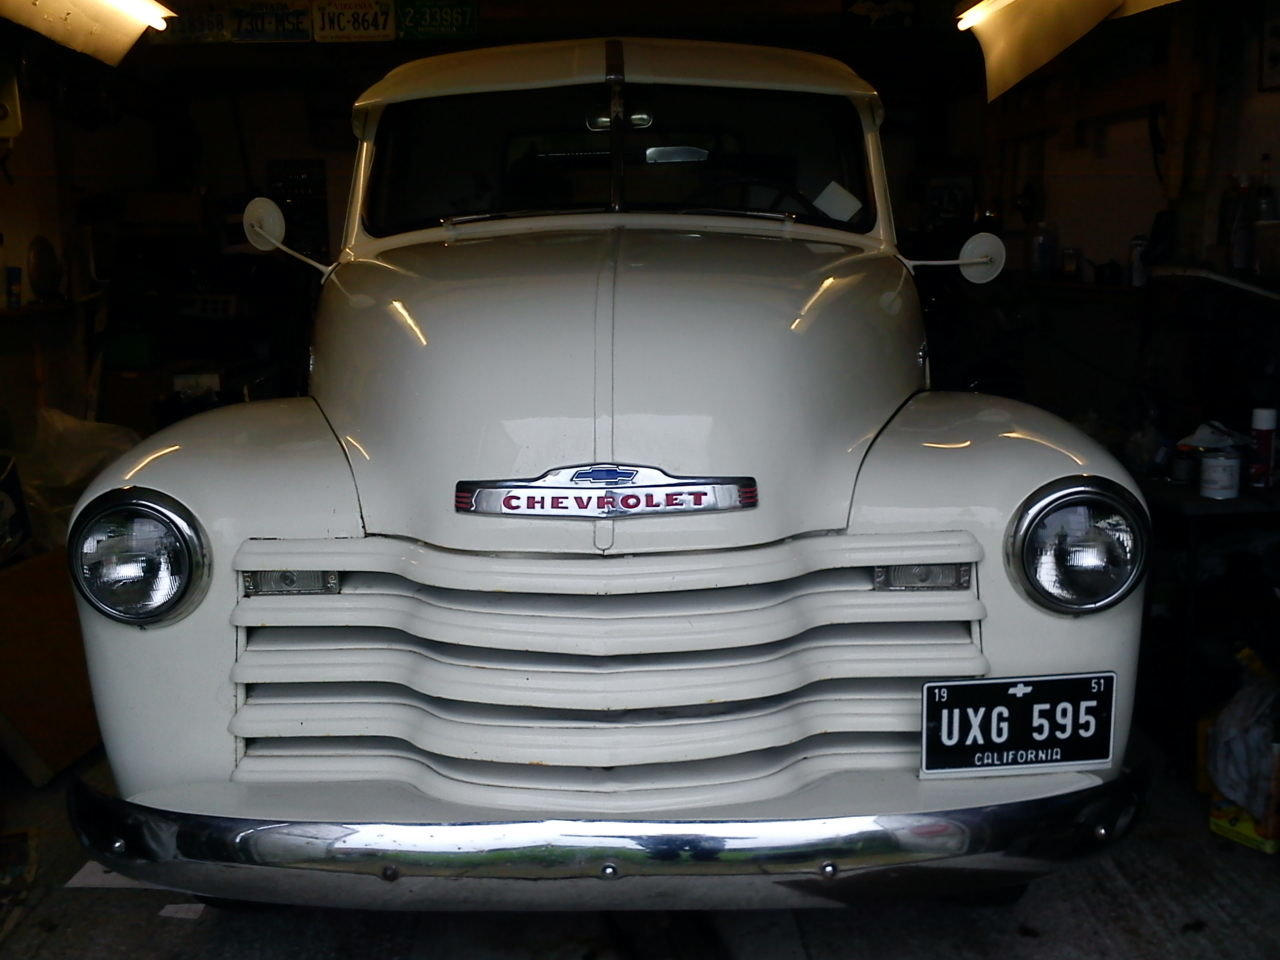 1951 Chevrolet step-side pick up For Sale (picture 4 of 6)